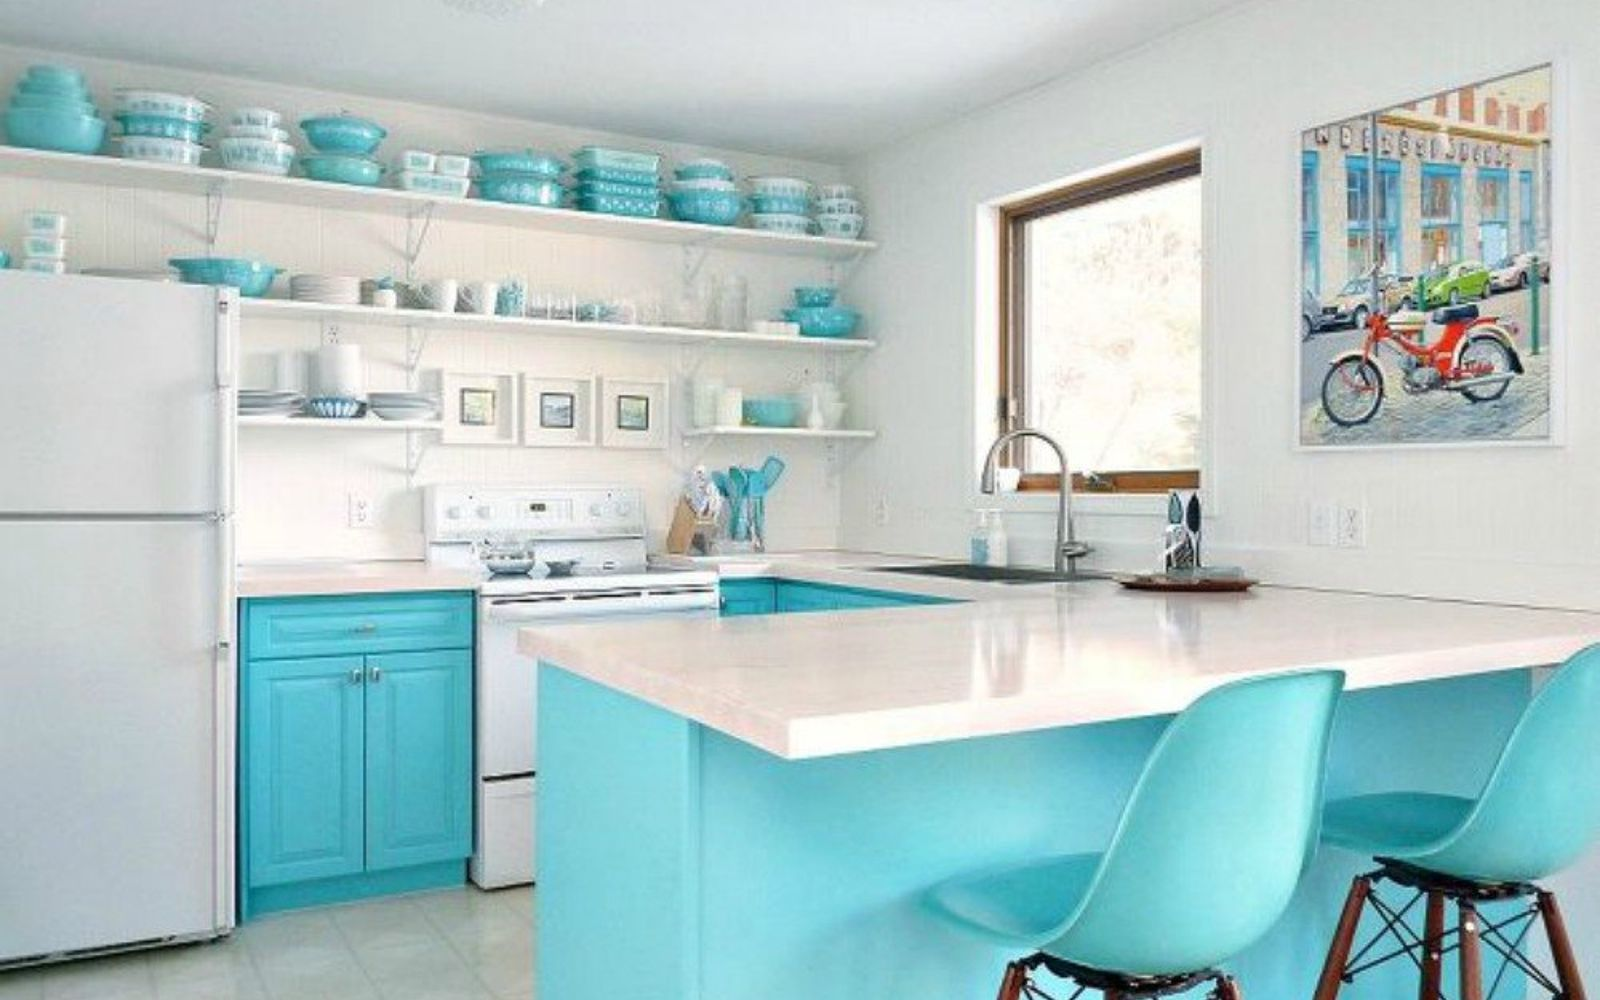 s 15 clever ways to add more kitchen storage space with open shelves, kitchen design, shelving ideas, storage ideas, Show off your colorful dishes